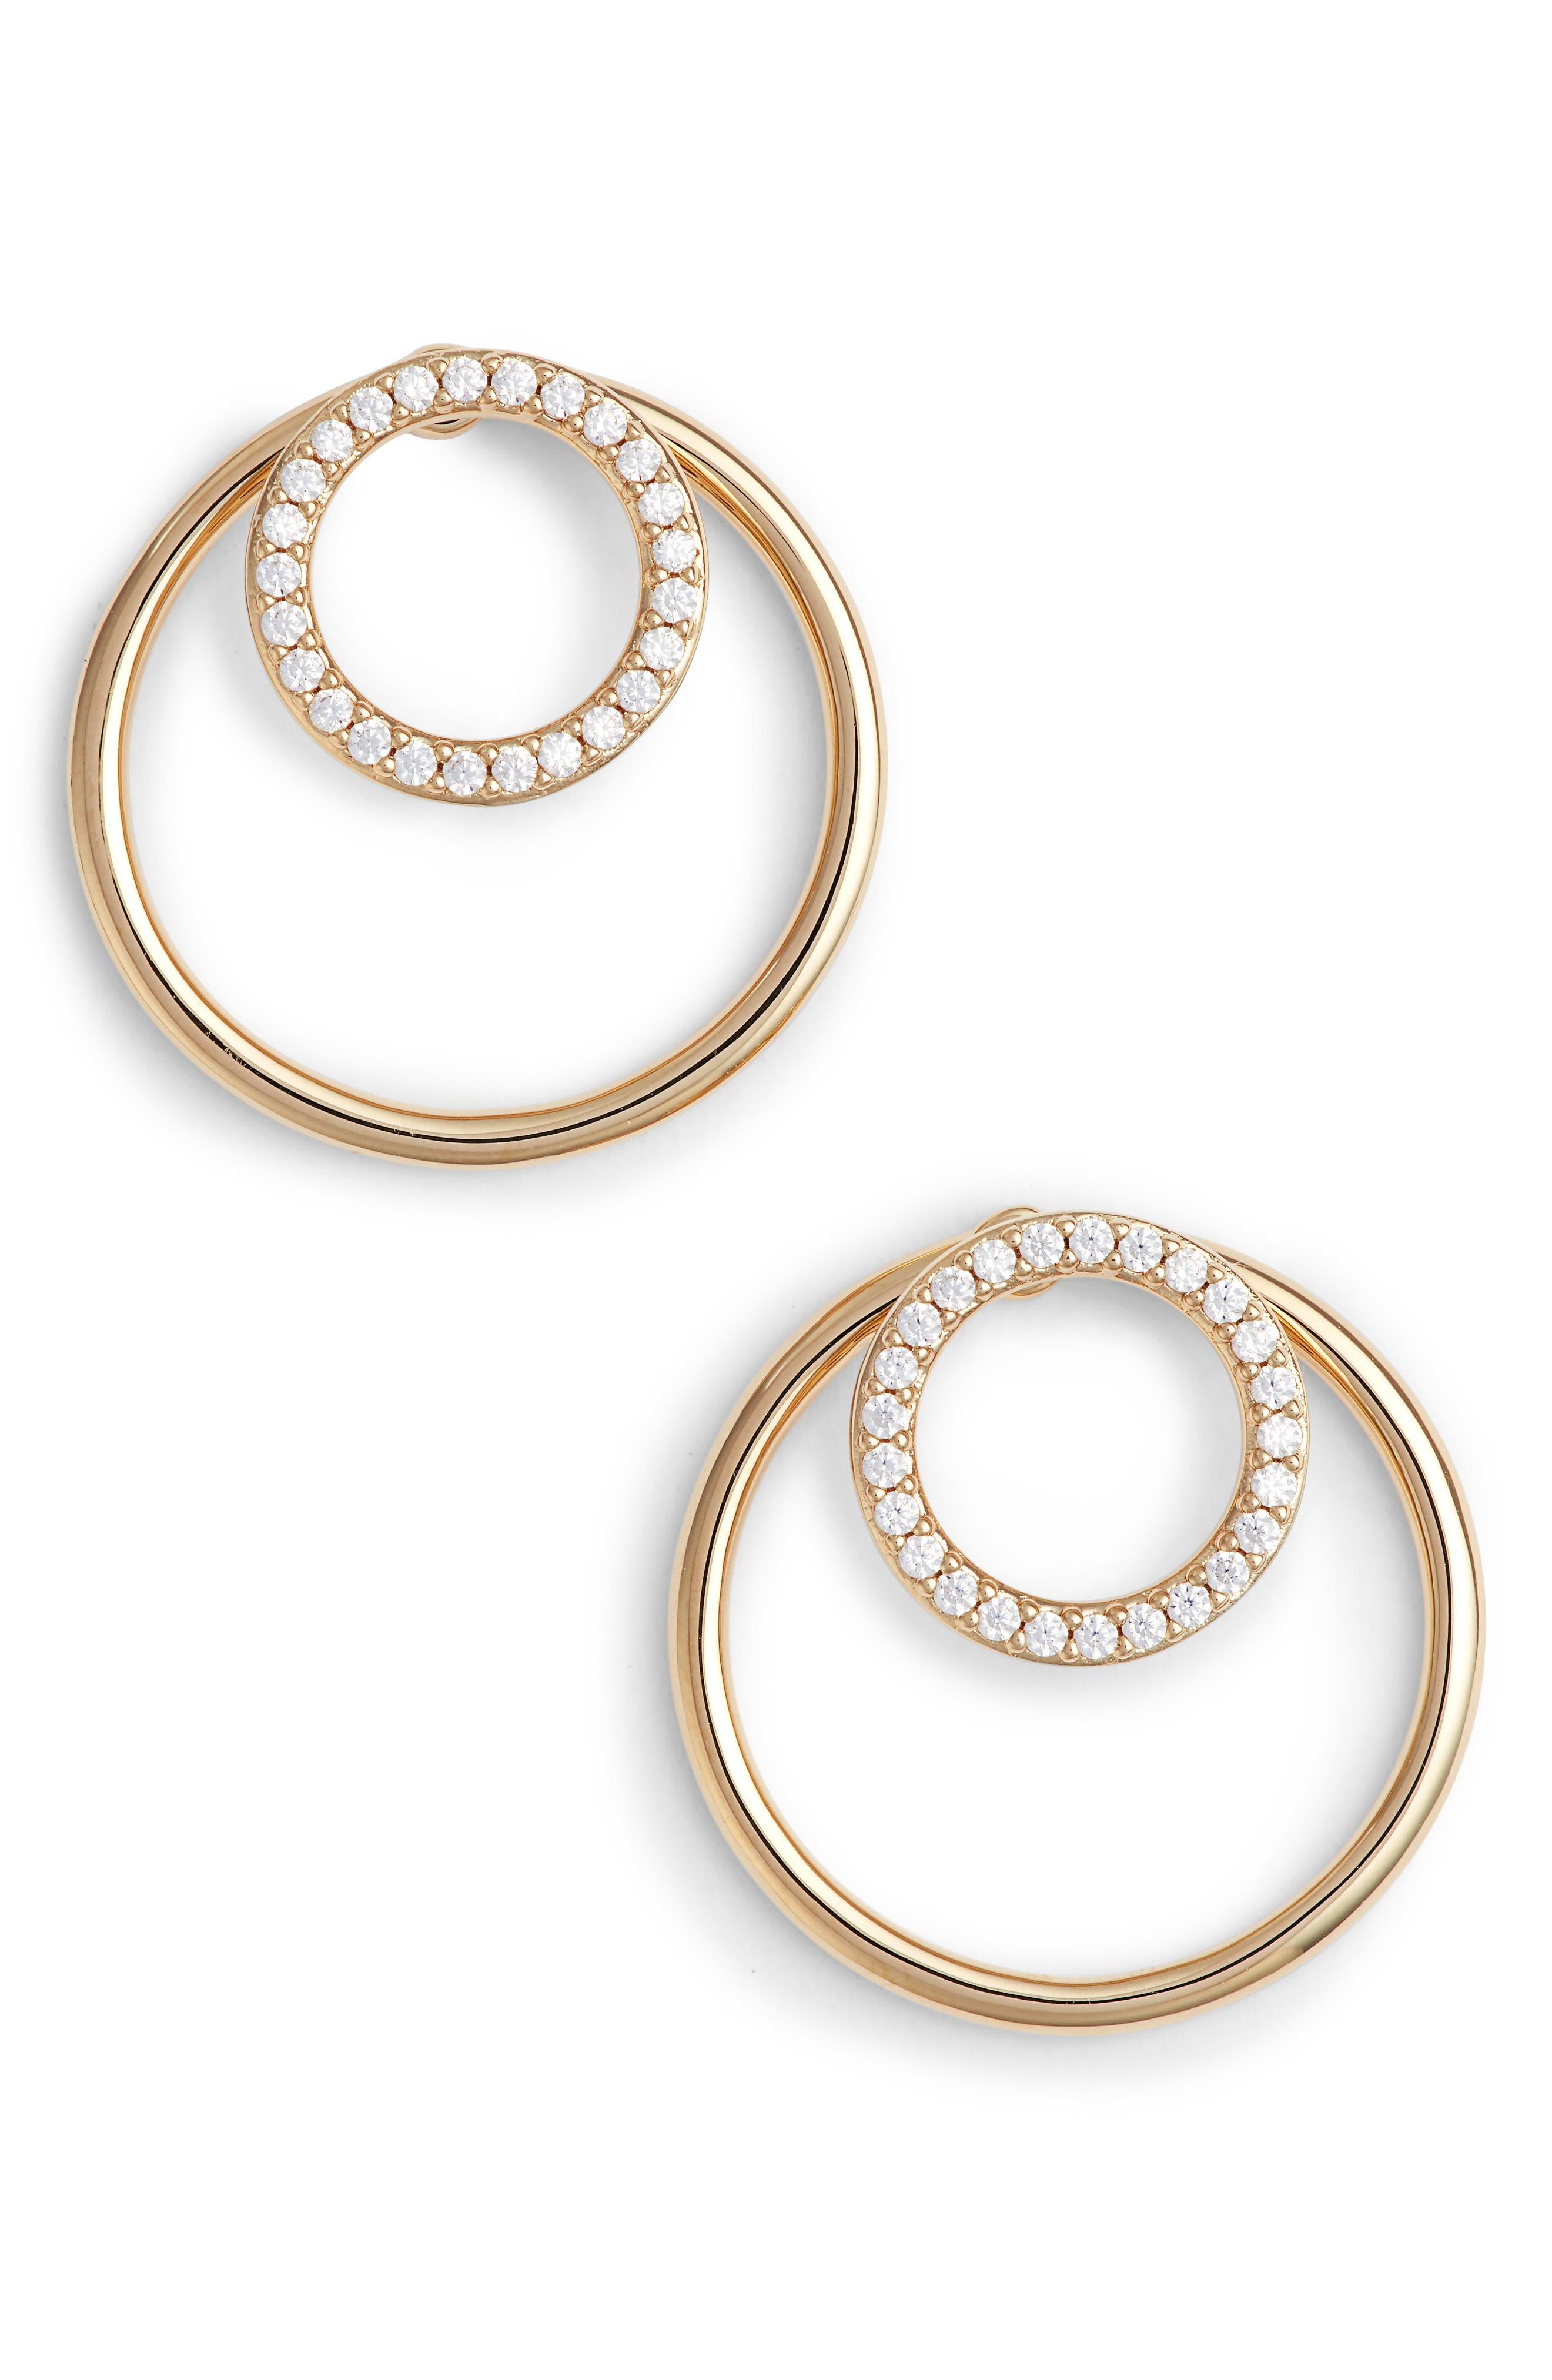 Pavé Double Circle Earrings,                         Main,                         color, Gold/ Clear